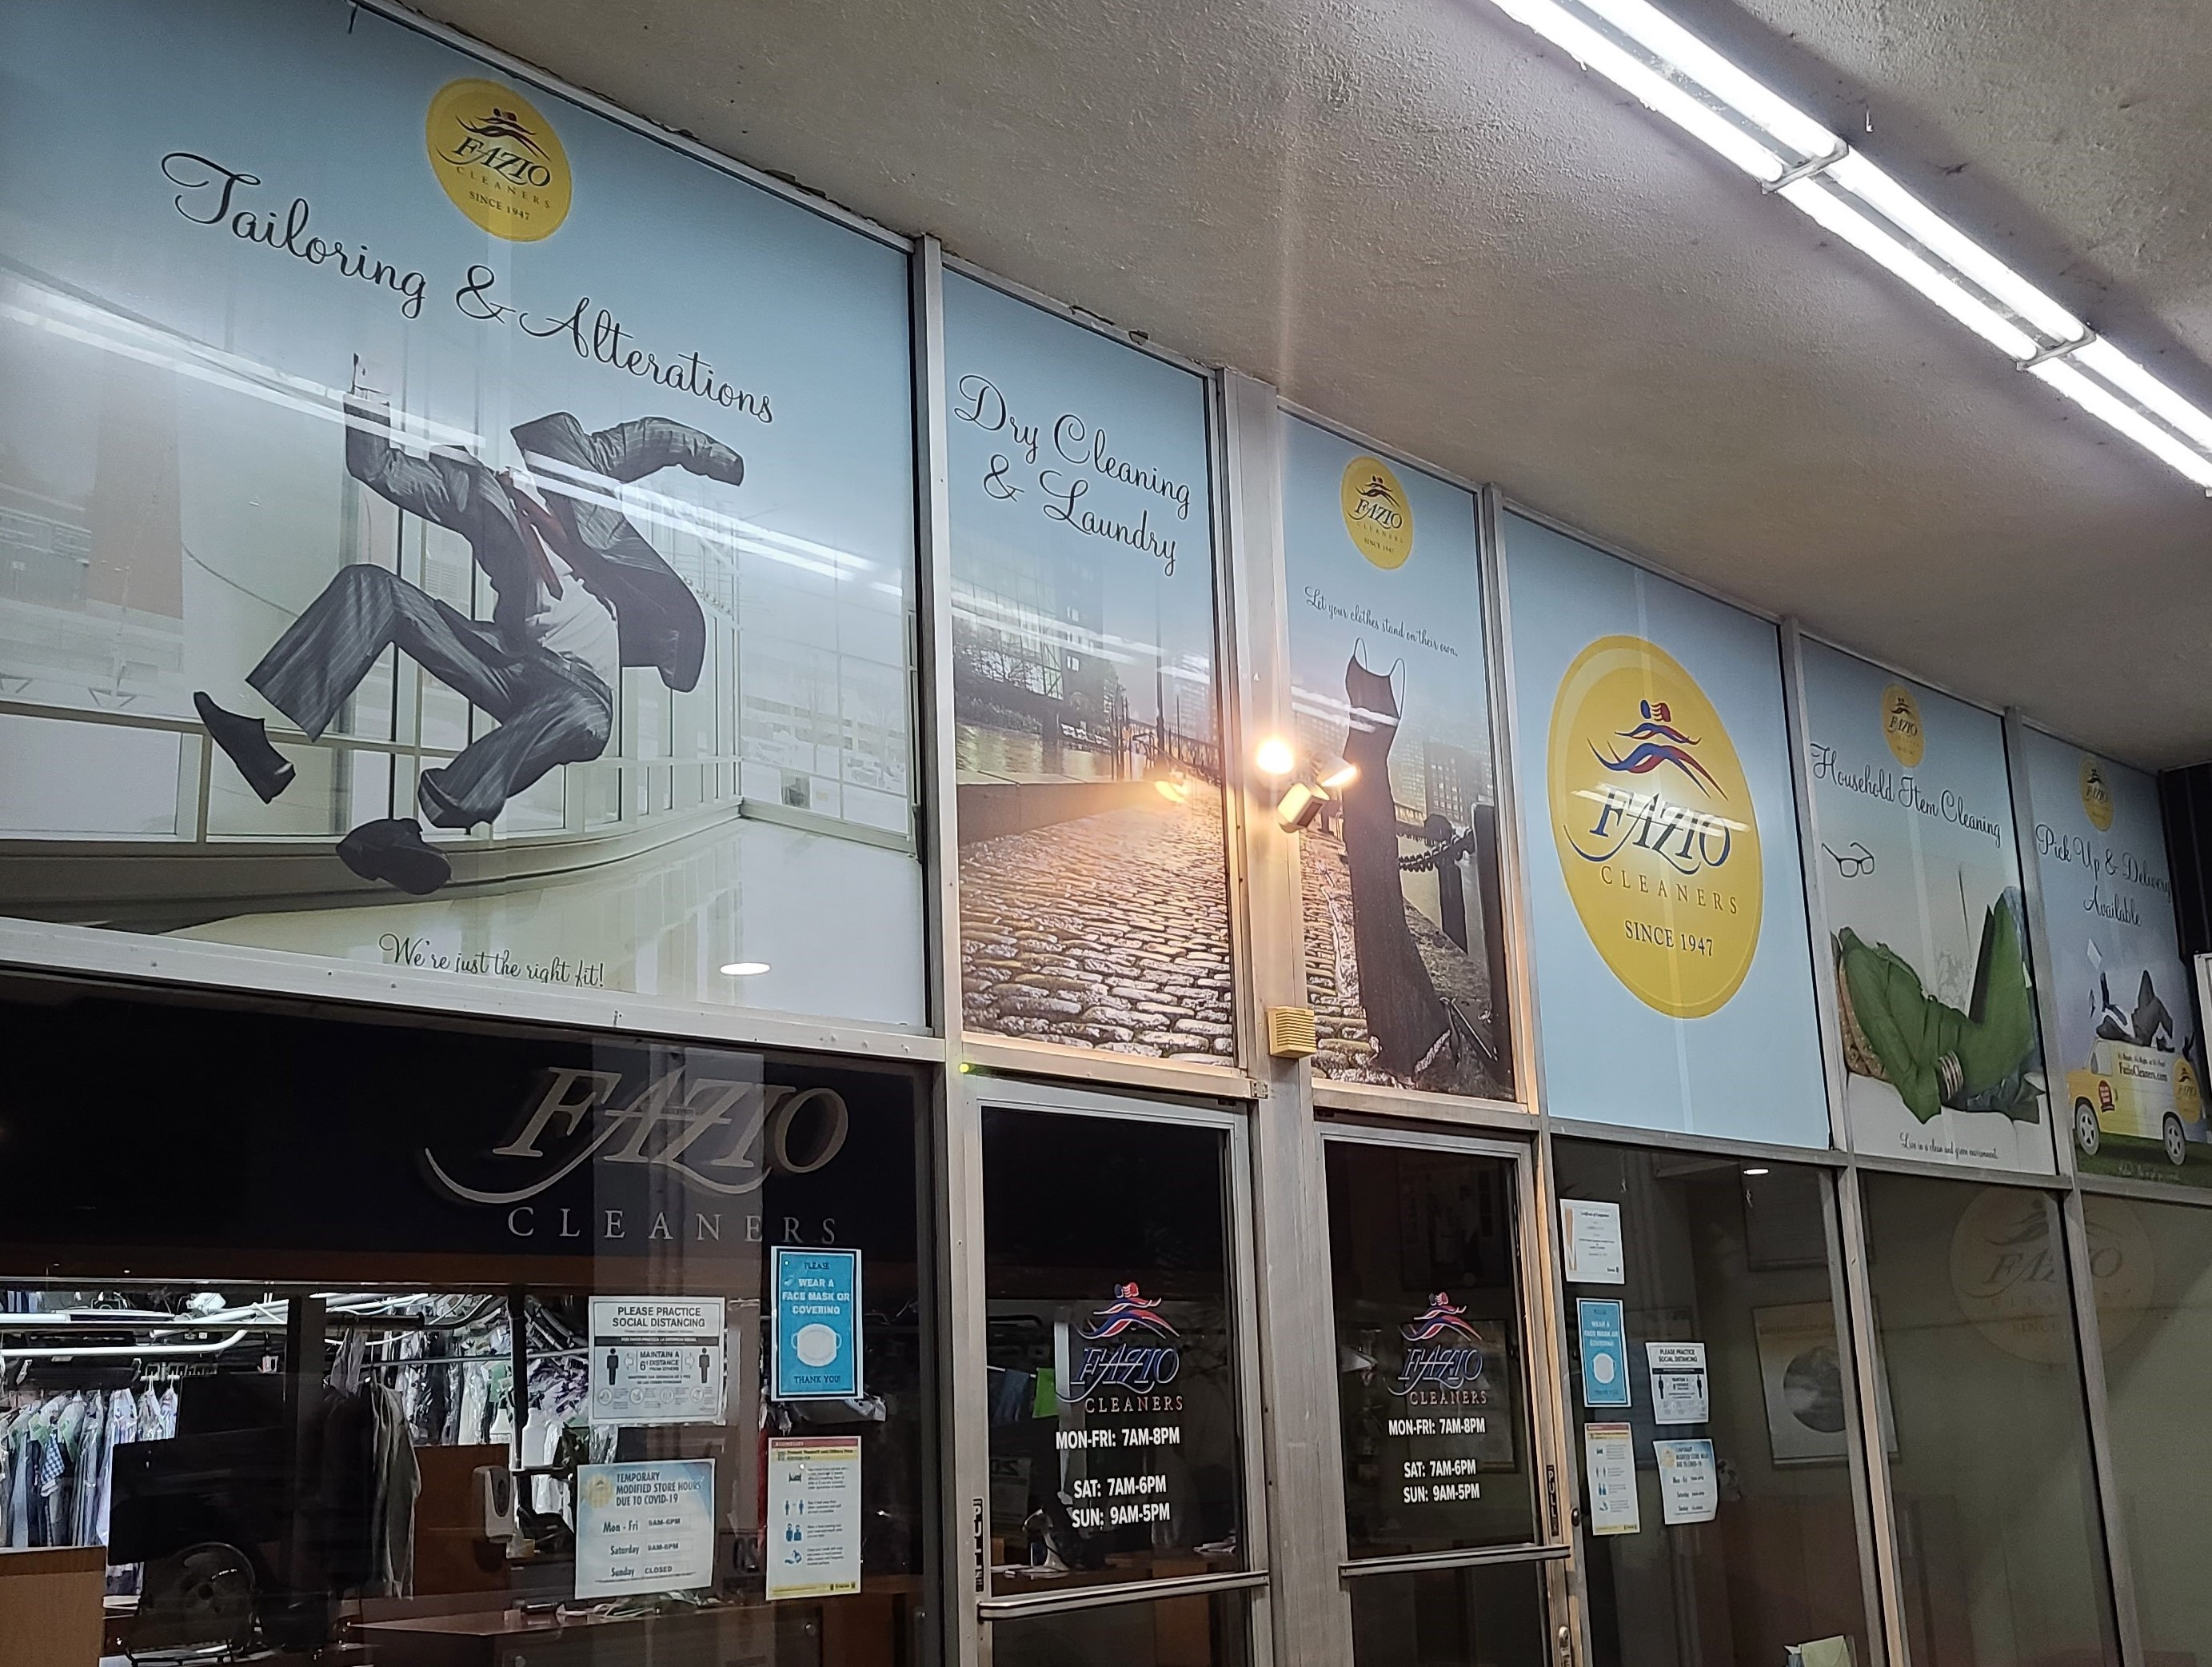 These eye-catching perforated window graphics really brighten up Fazio Cleaners' Los Angeles storefront while advertising their services at the same time.